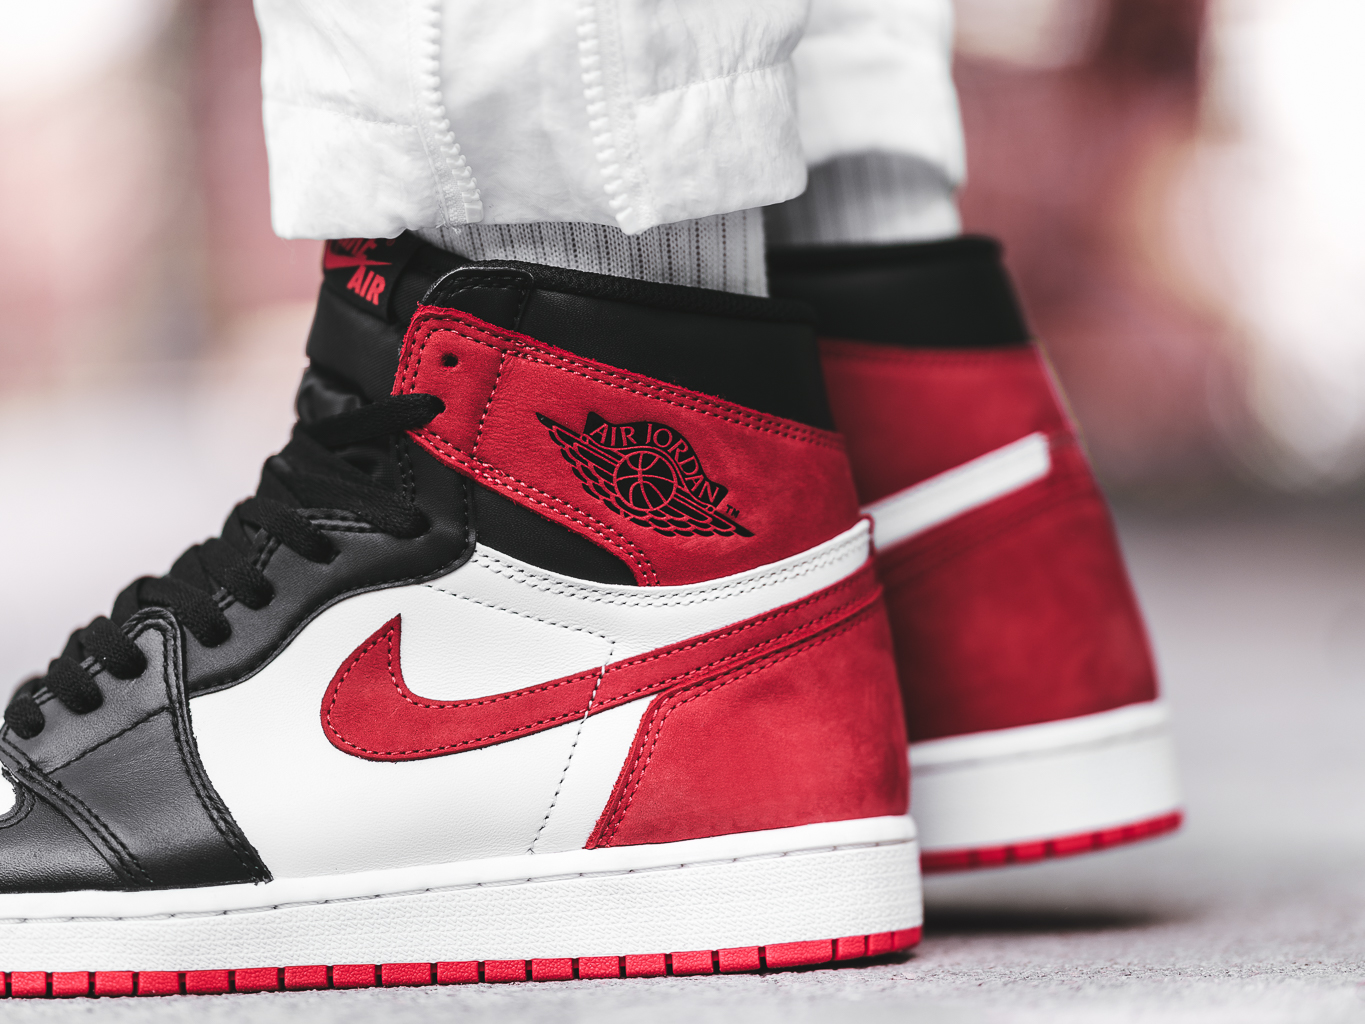 reputable site 1796a 012a2 An On-Feet Look At The Air Jordan 1 Retro High OG Track Red ...